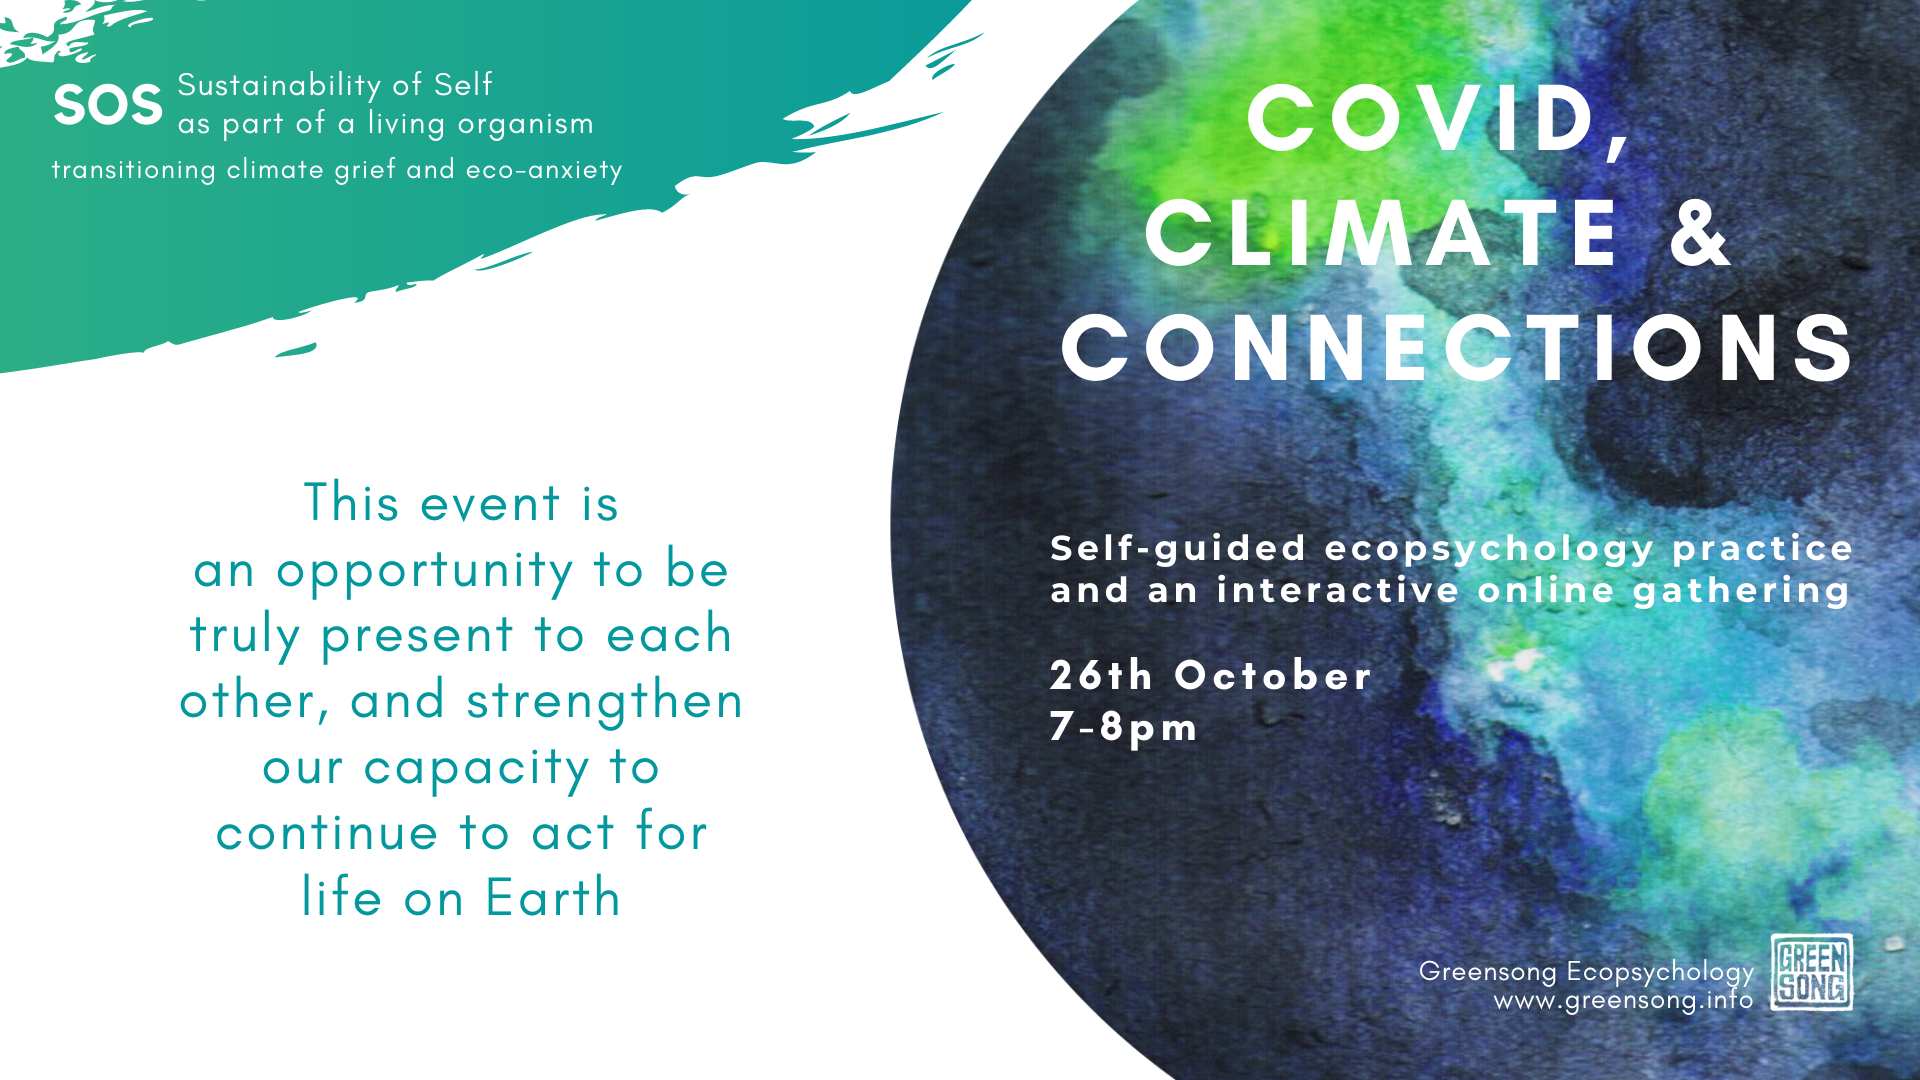 Covid, Climate and Connections